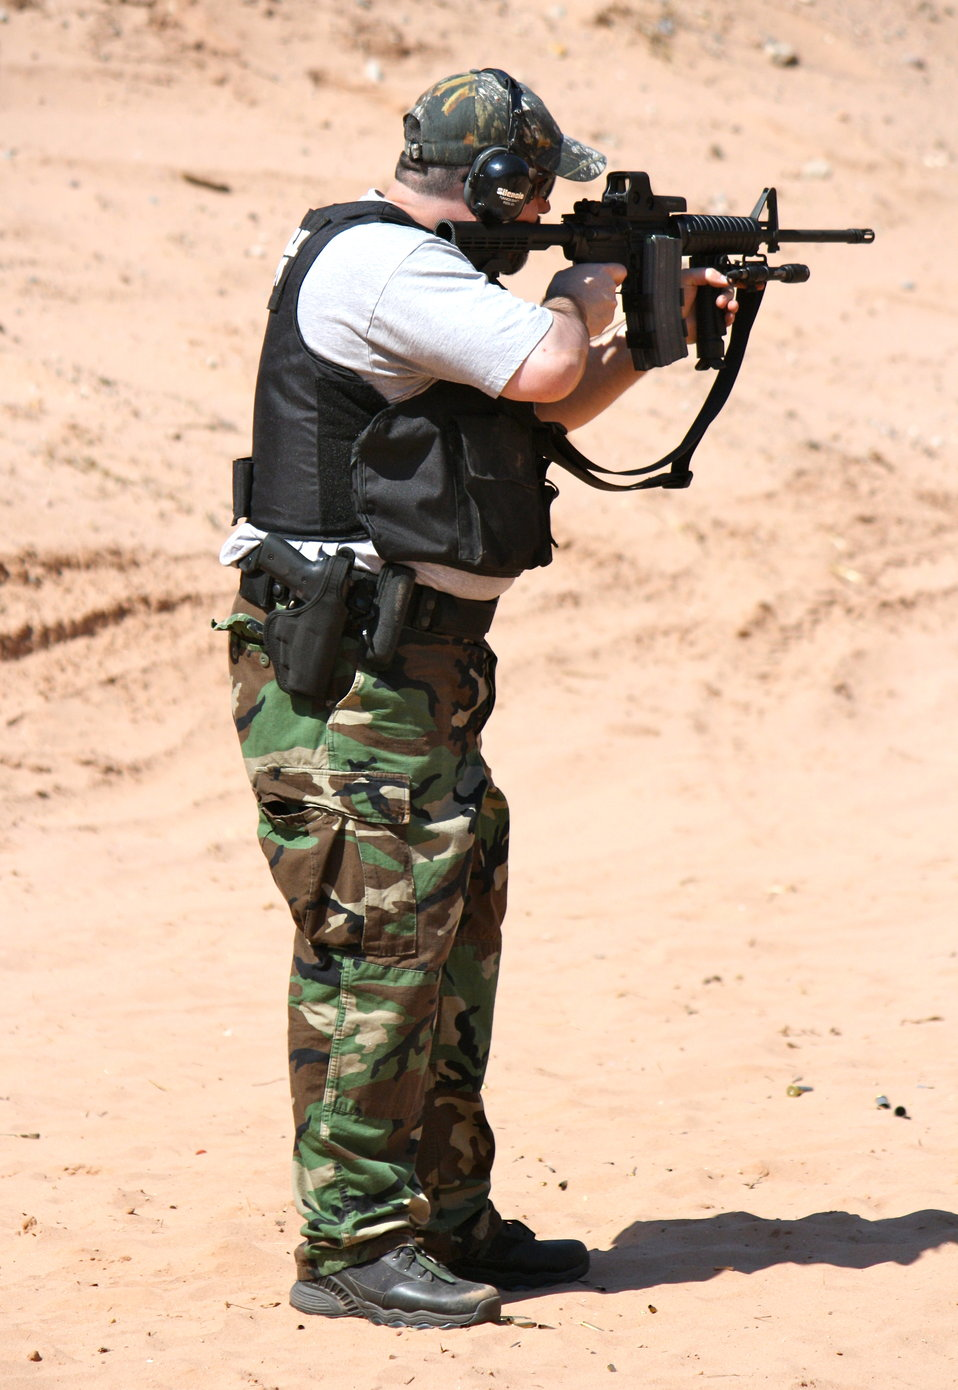 Special Agent Shooting with AR-15